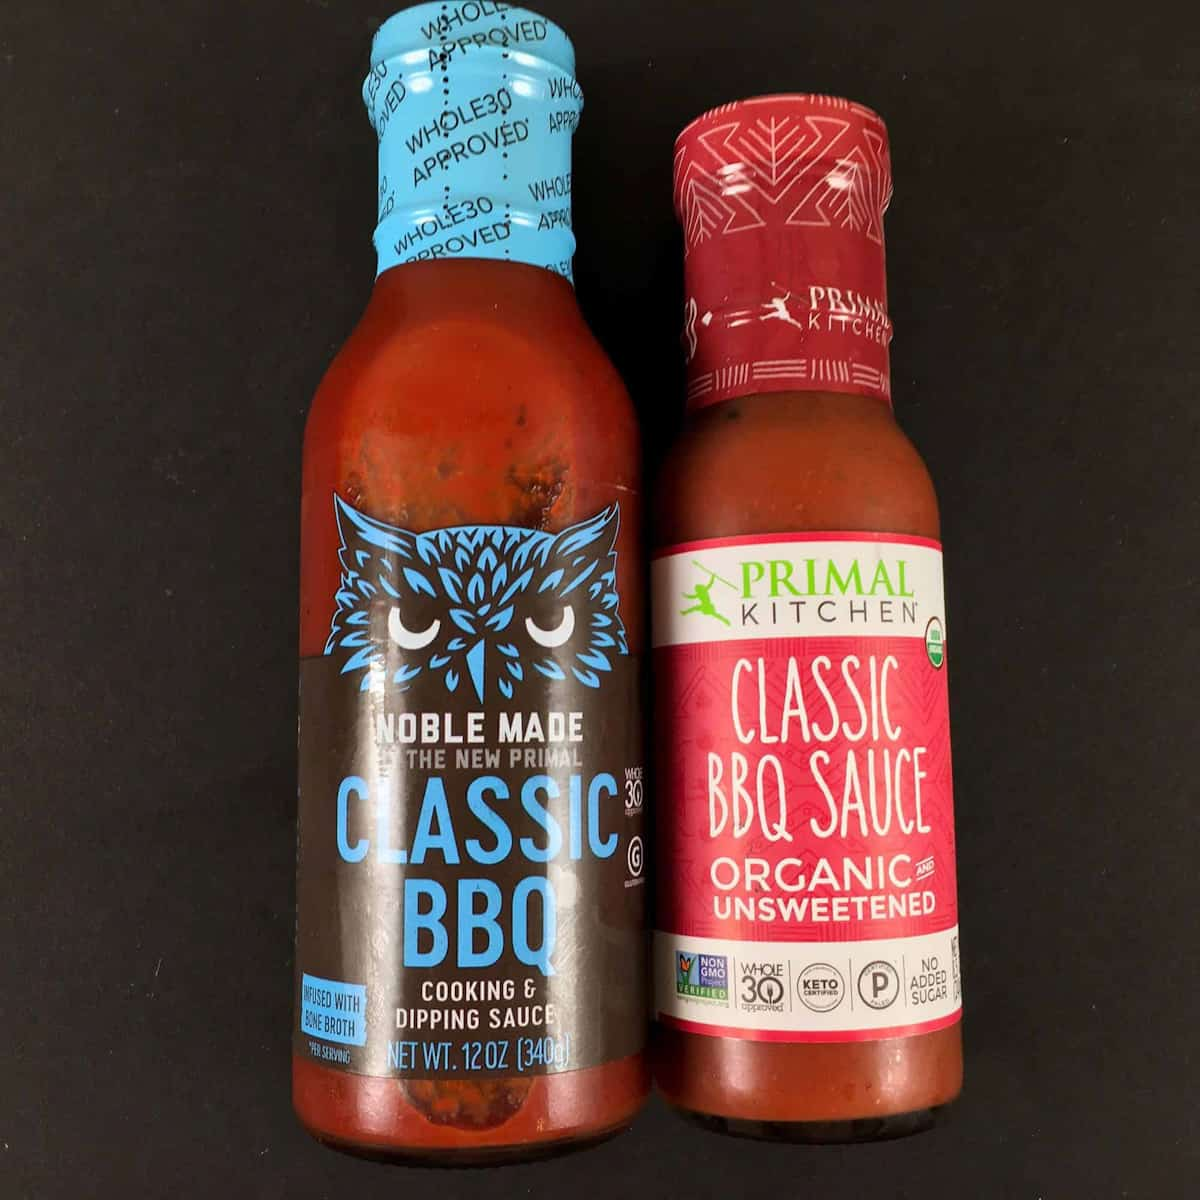 Primal Kitchen BBQ sauce and Noble Made BBQ sauce